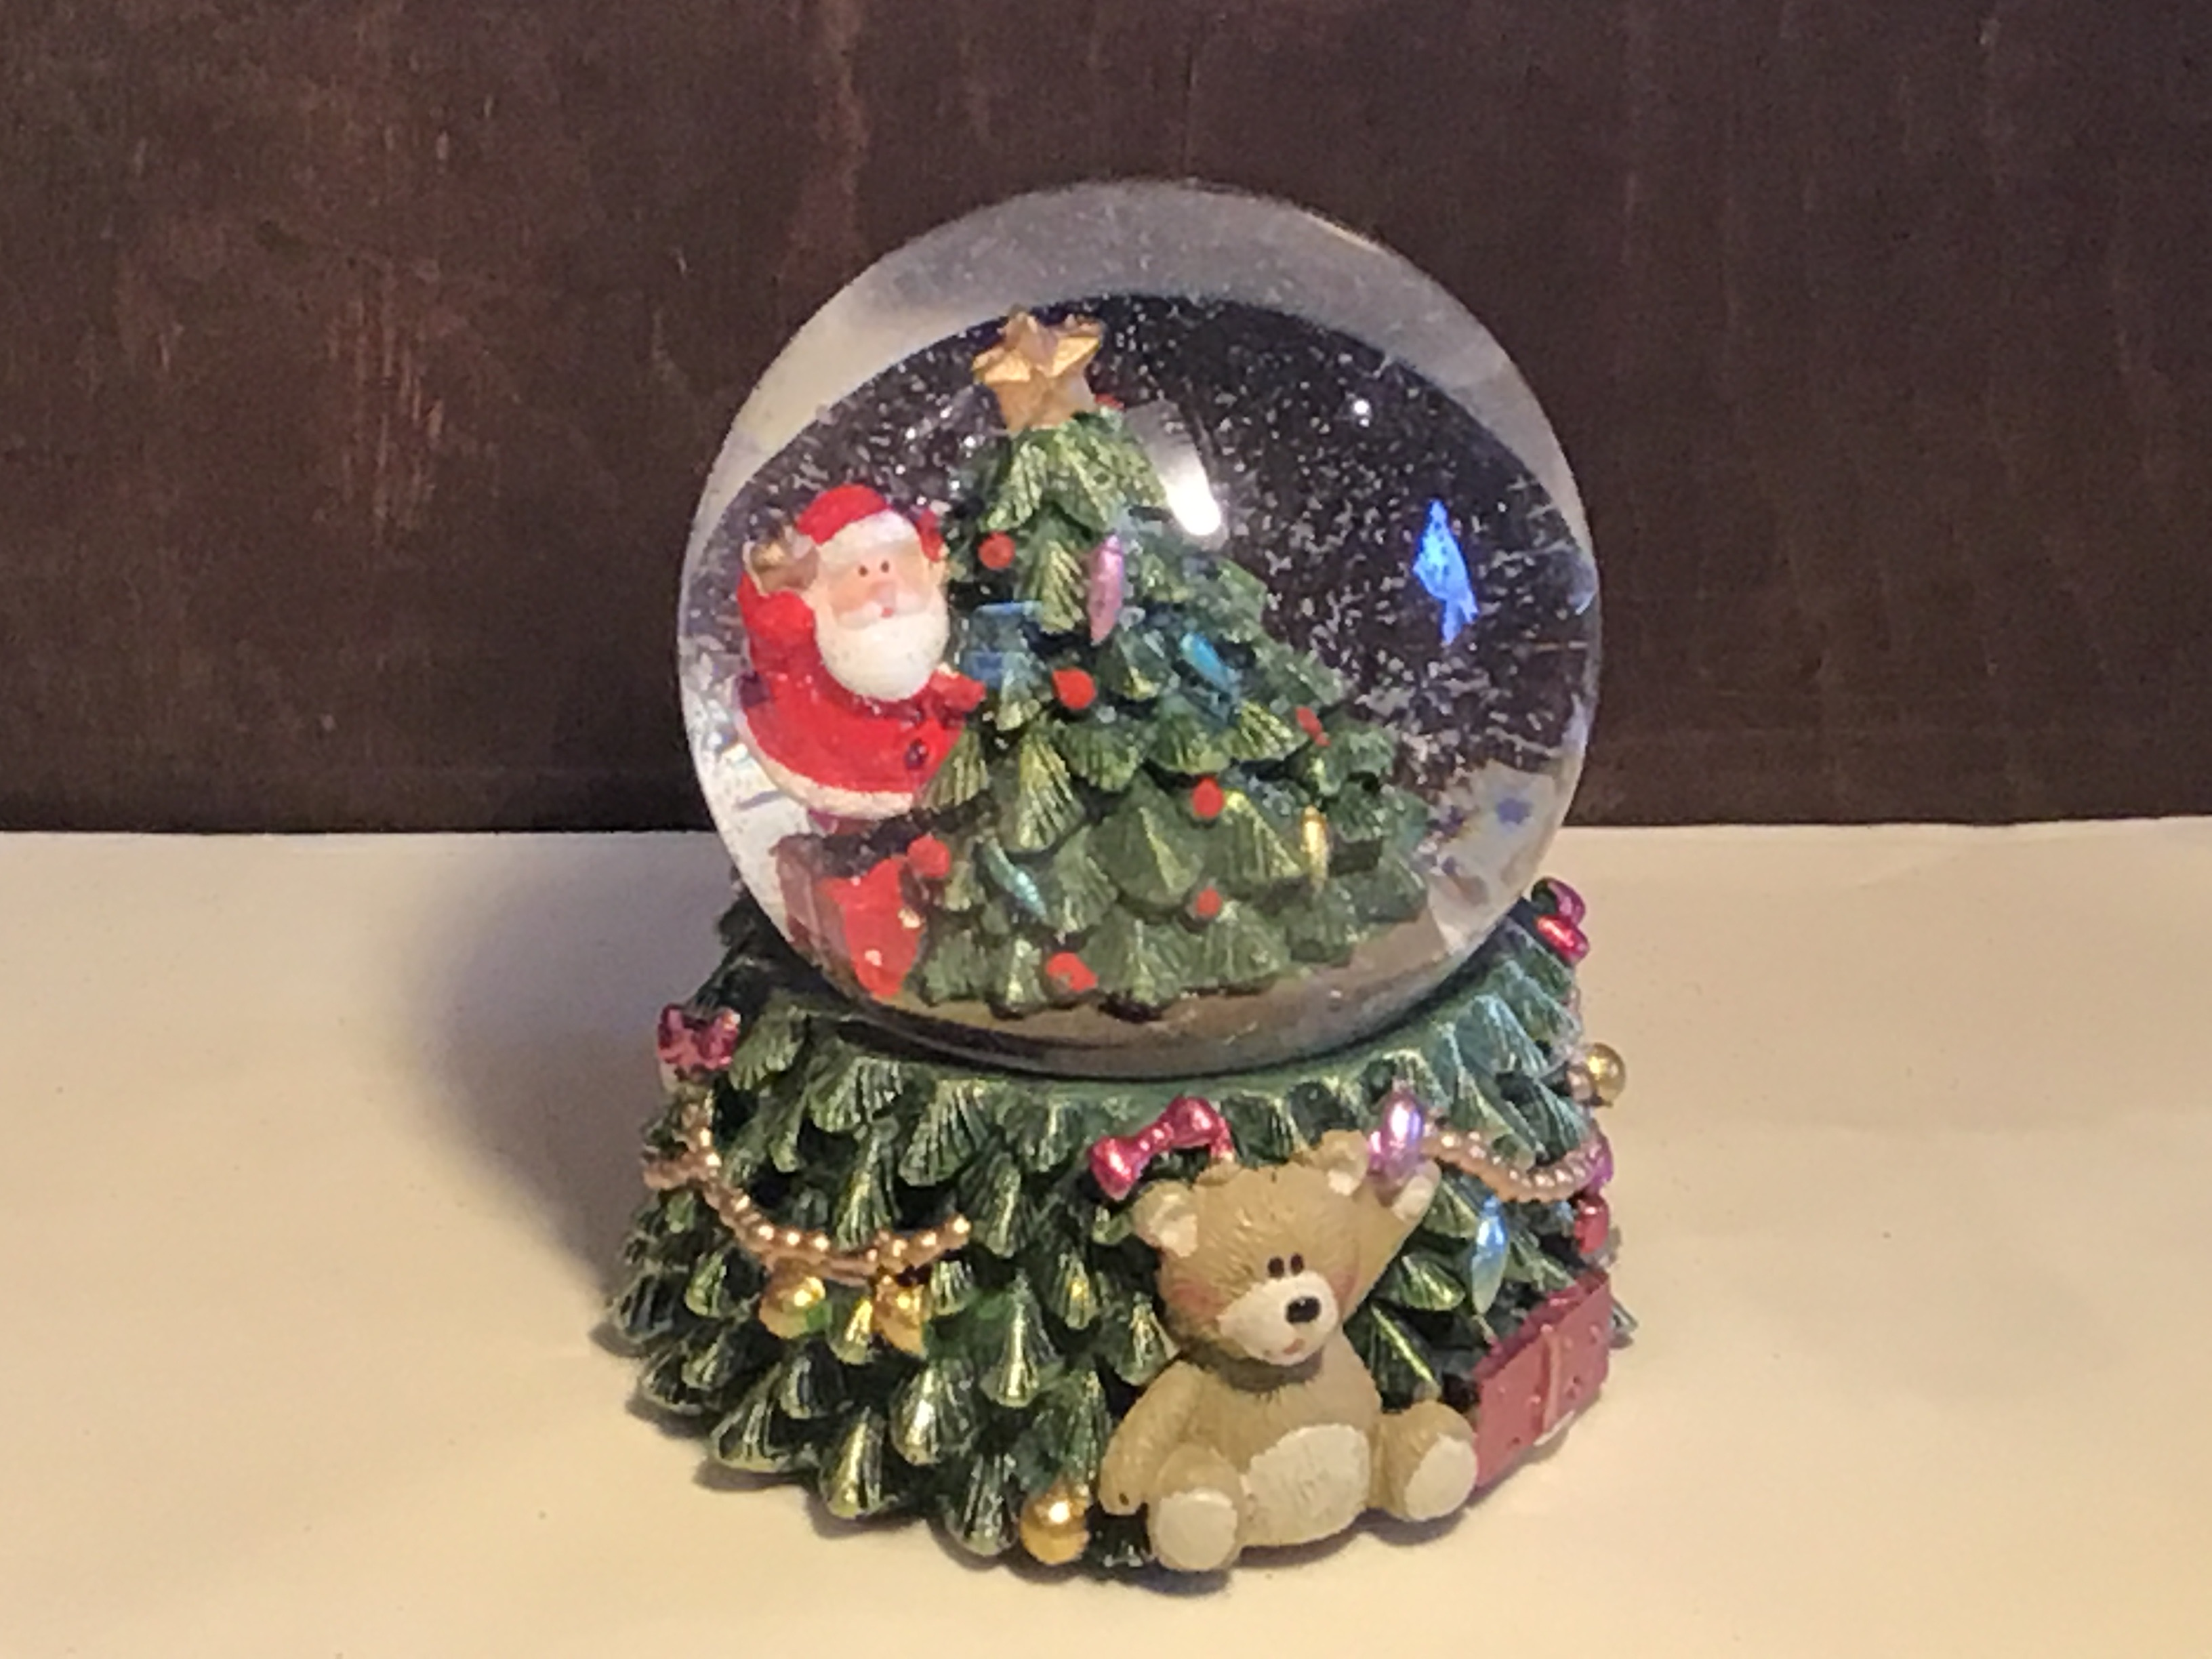 LED medium tree snowglobe